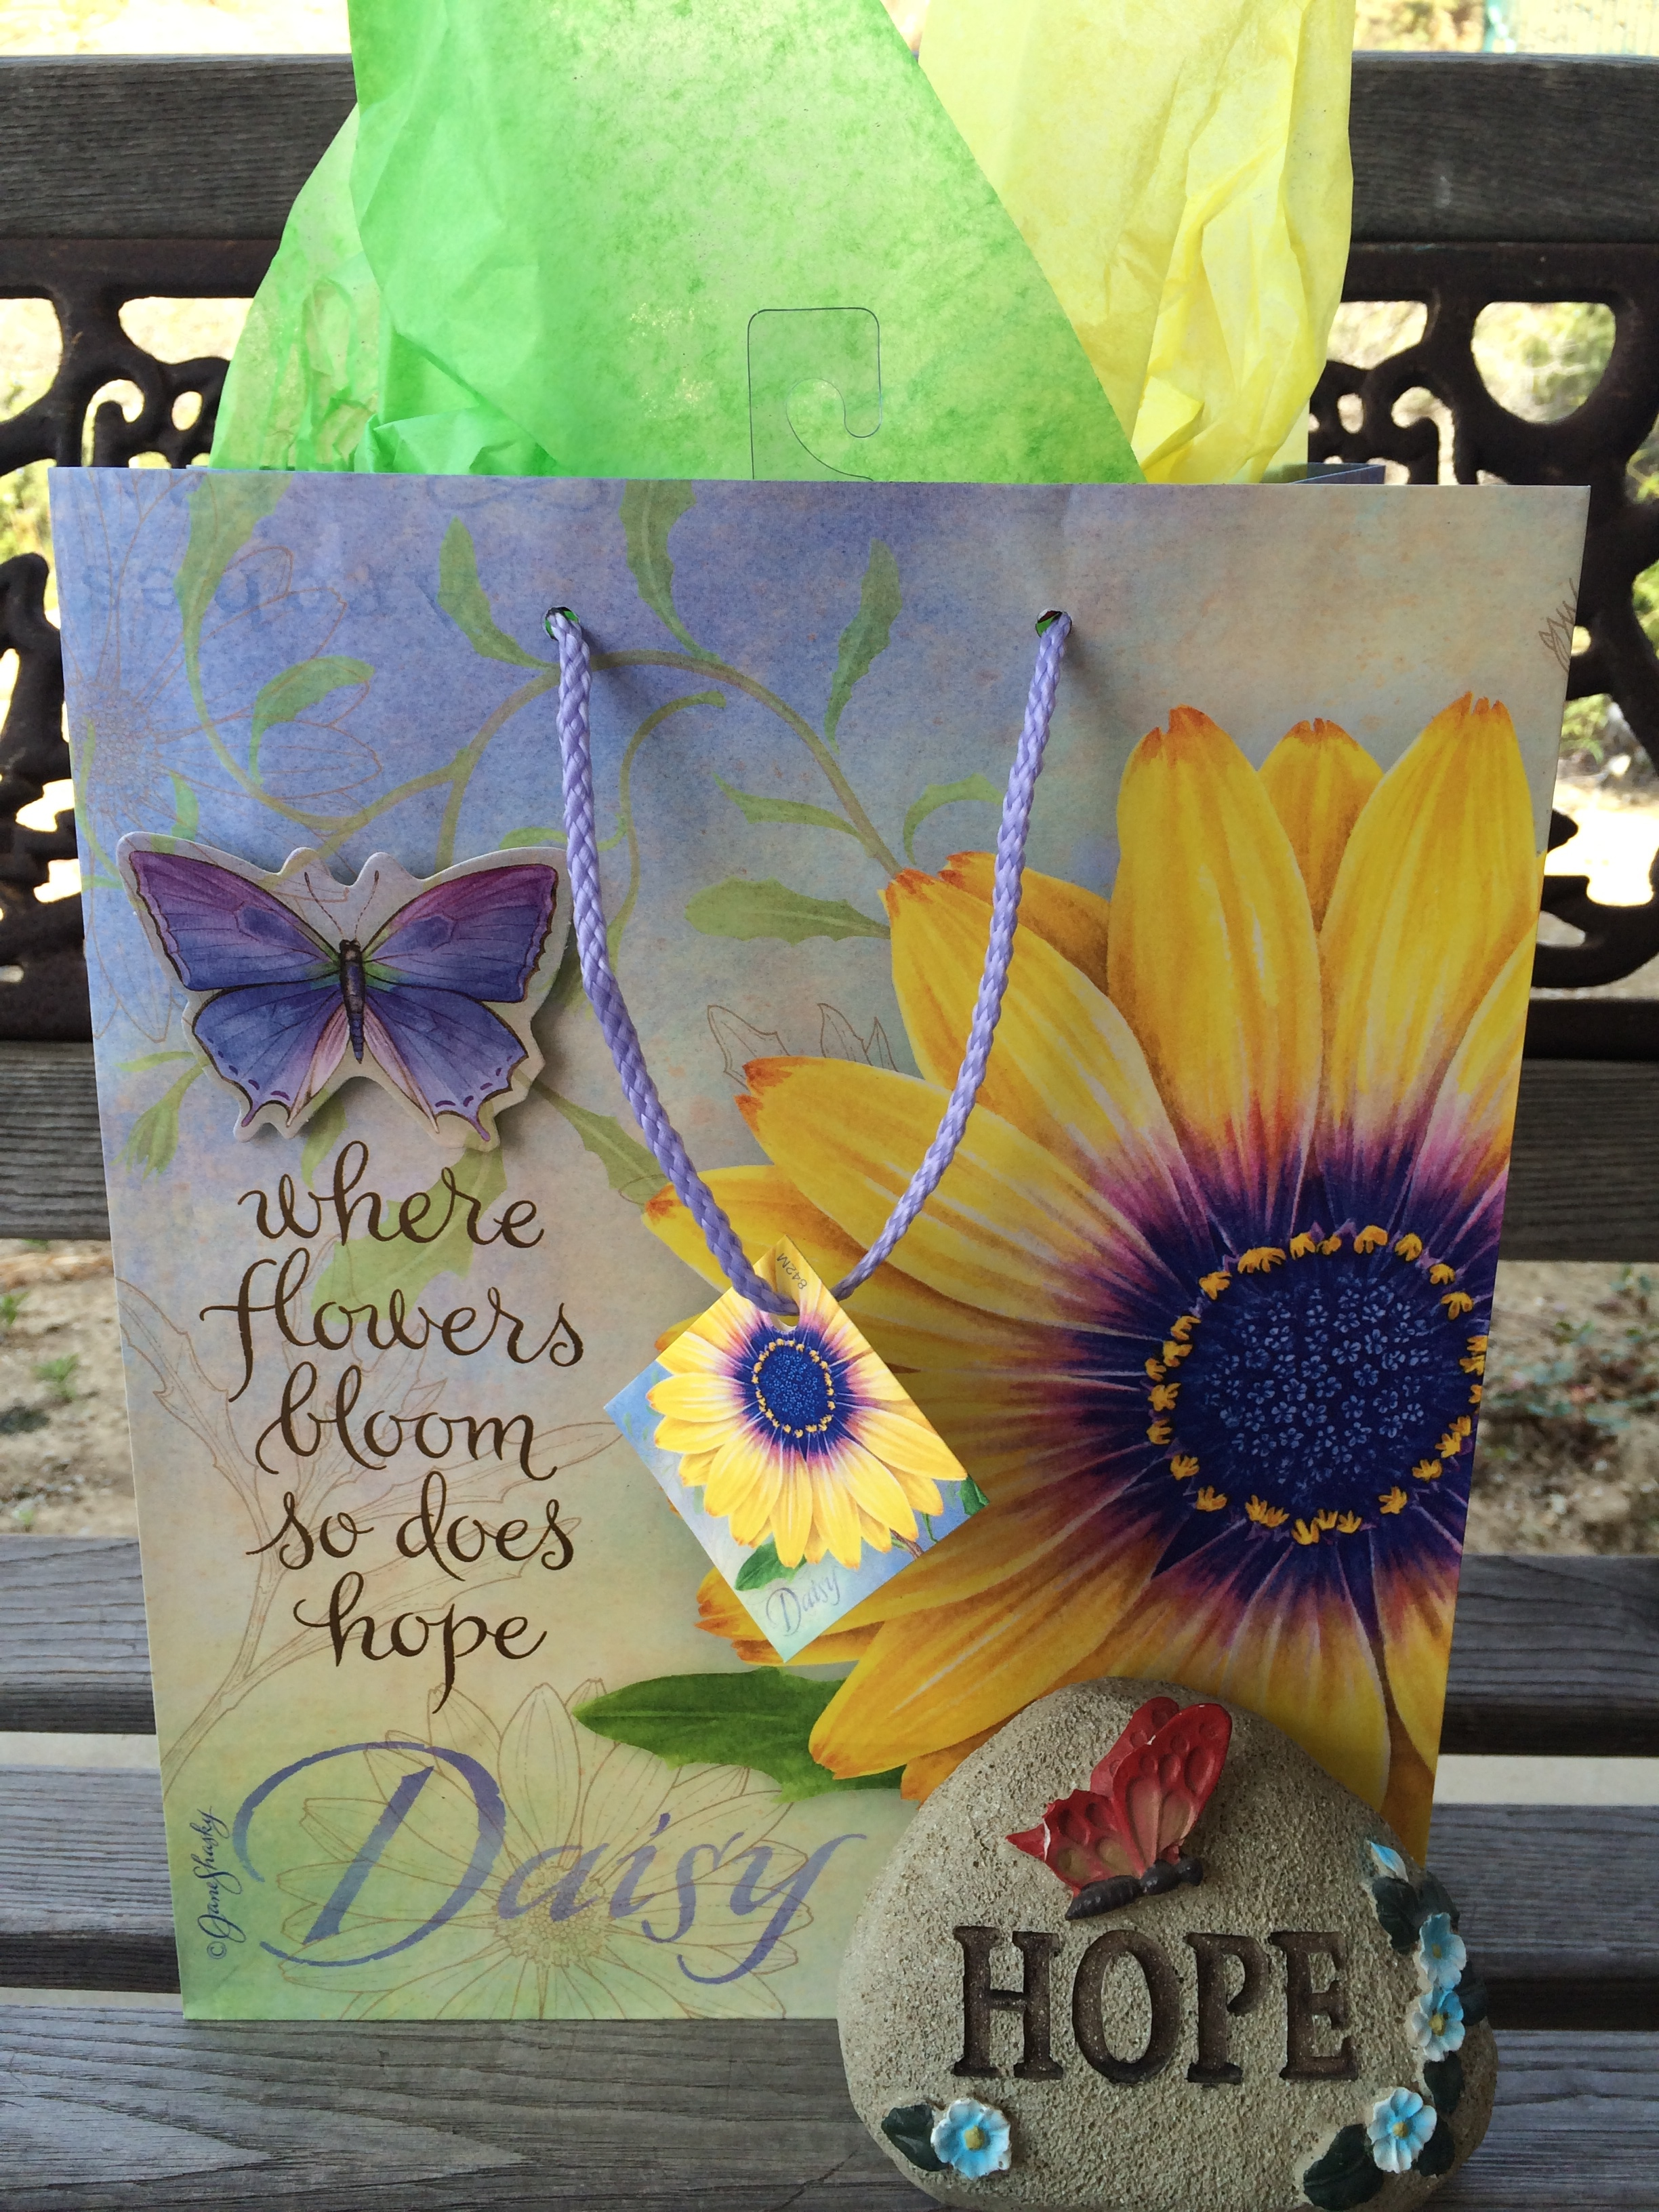 A beautiful mom a beautiful garden and beautiful gifts god gives im reminded through this gift bag that beautiful flowers do brighten peoples lives izmirmasajfo